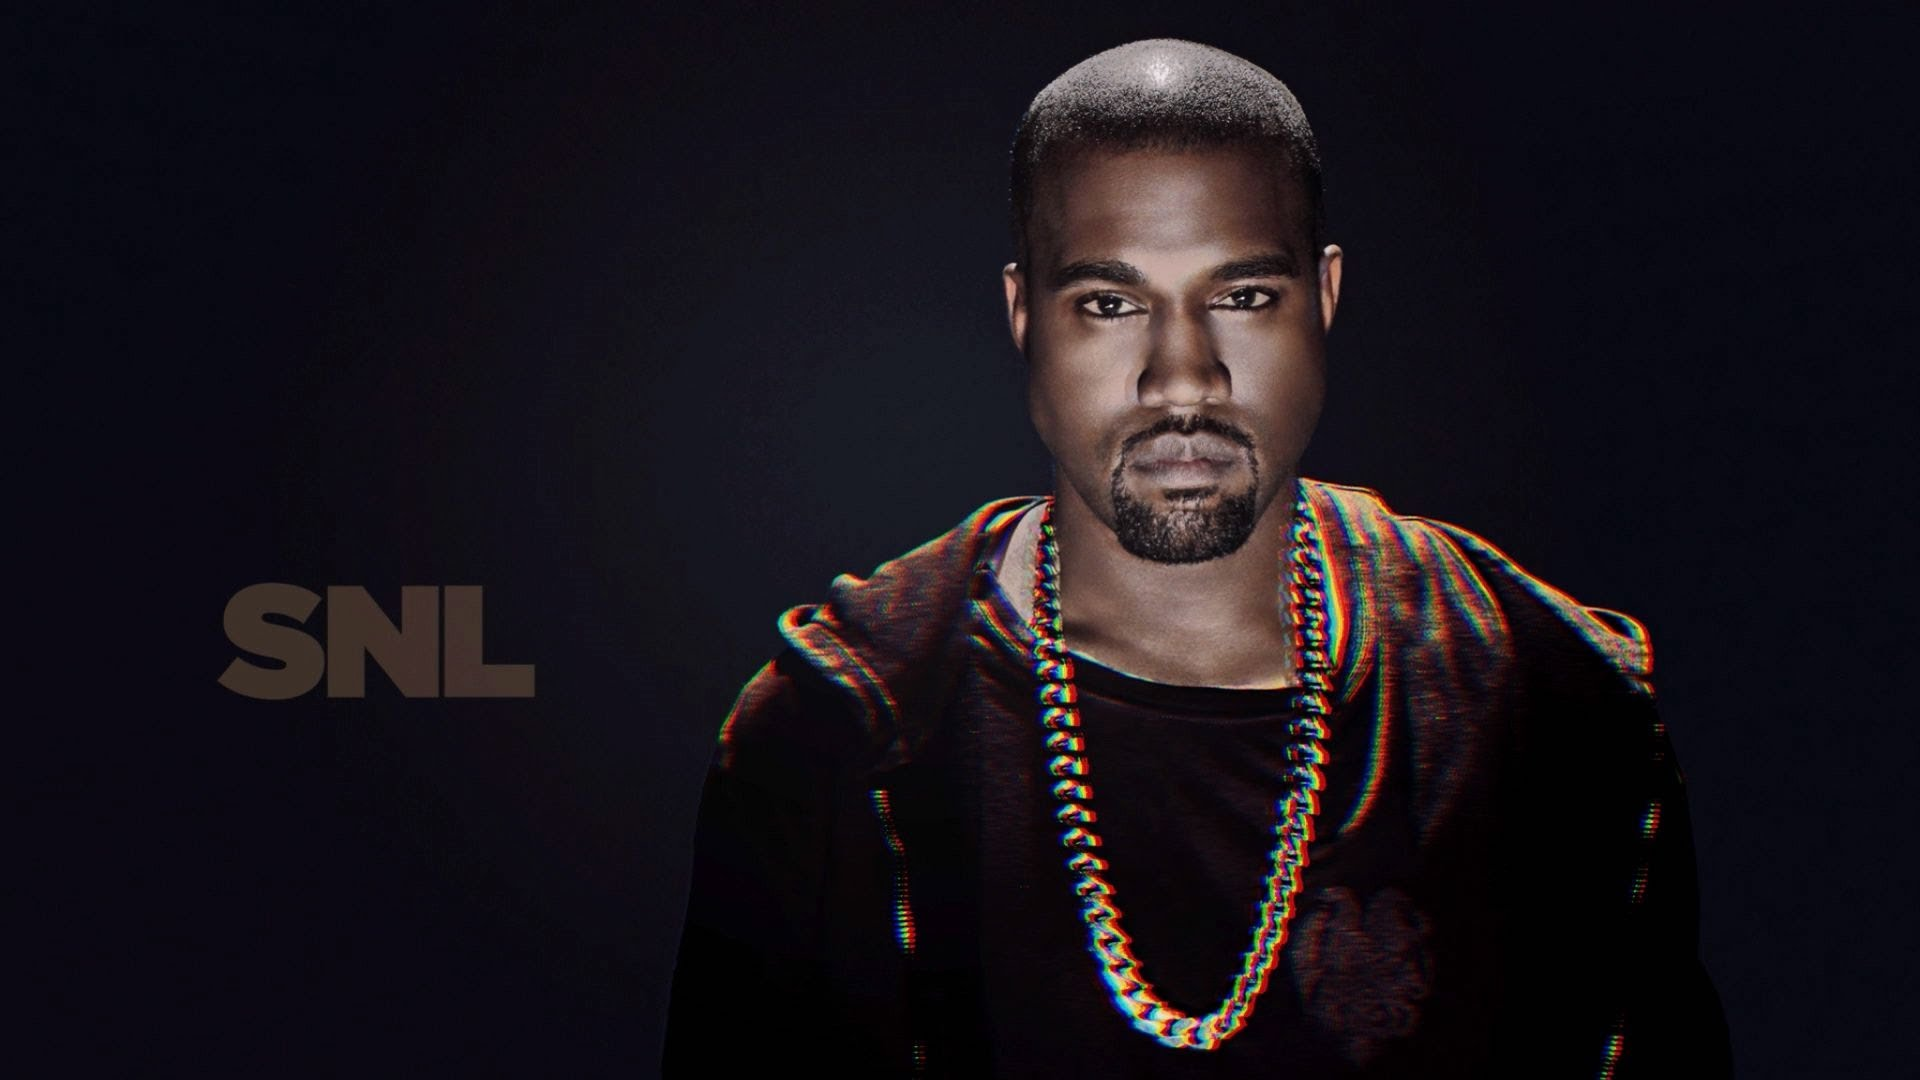 Kanye West - New Slaves (Live on SNL) - Duration: 3 minutes.